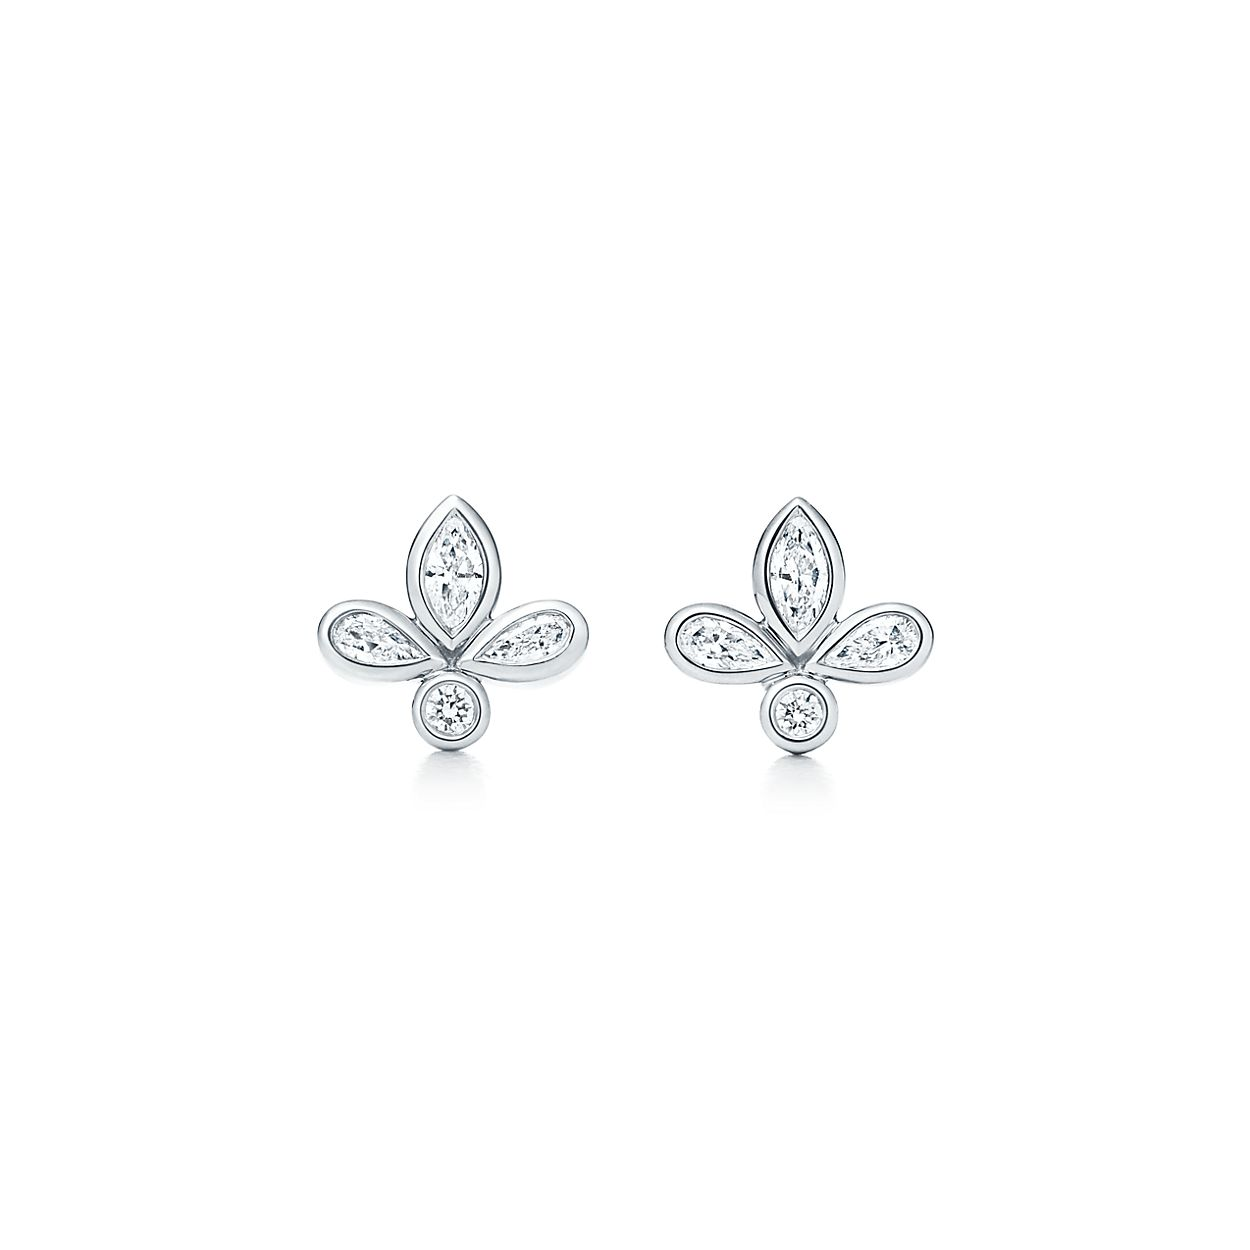 Tiffany Fleur De Lis Earrings